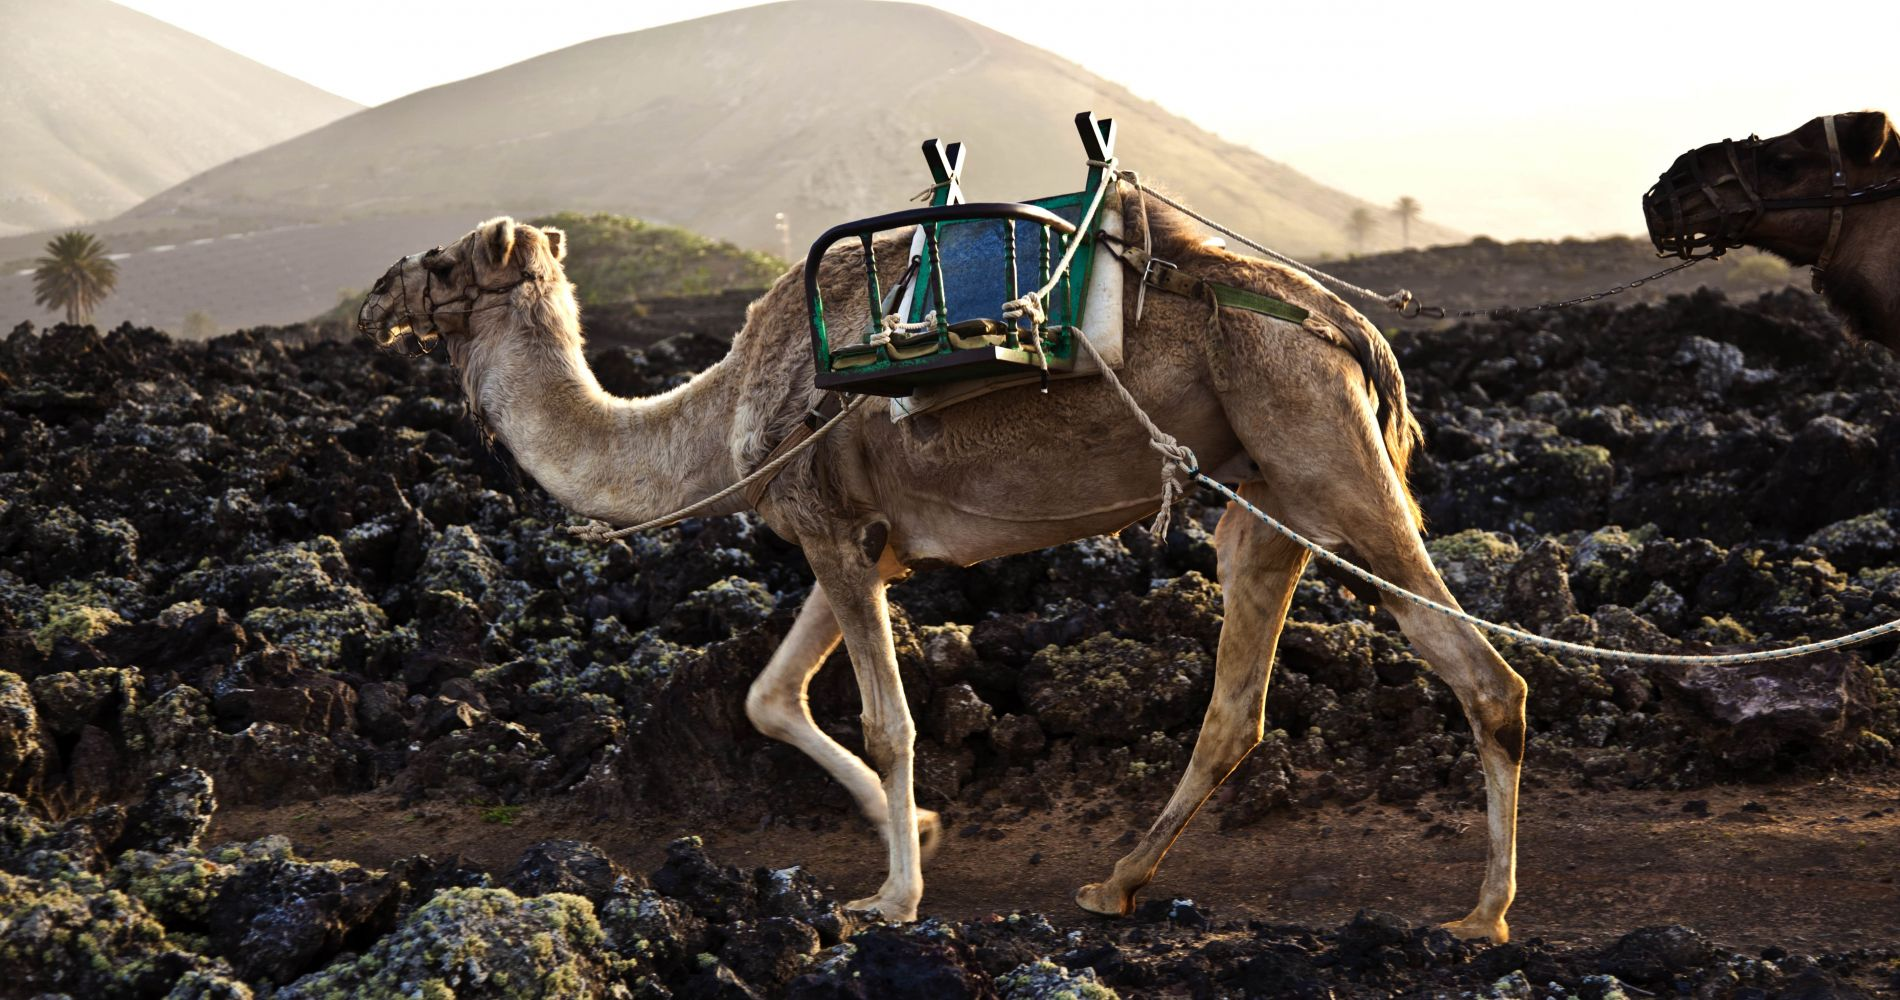 Full-Day Volcanoes and Caves Experience of Lanzarote